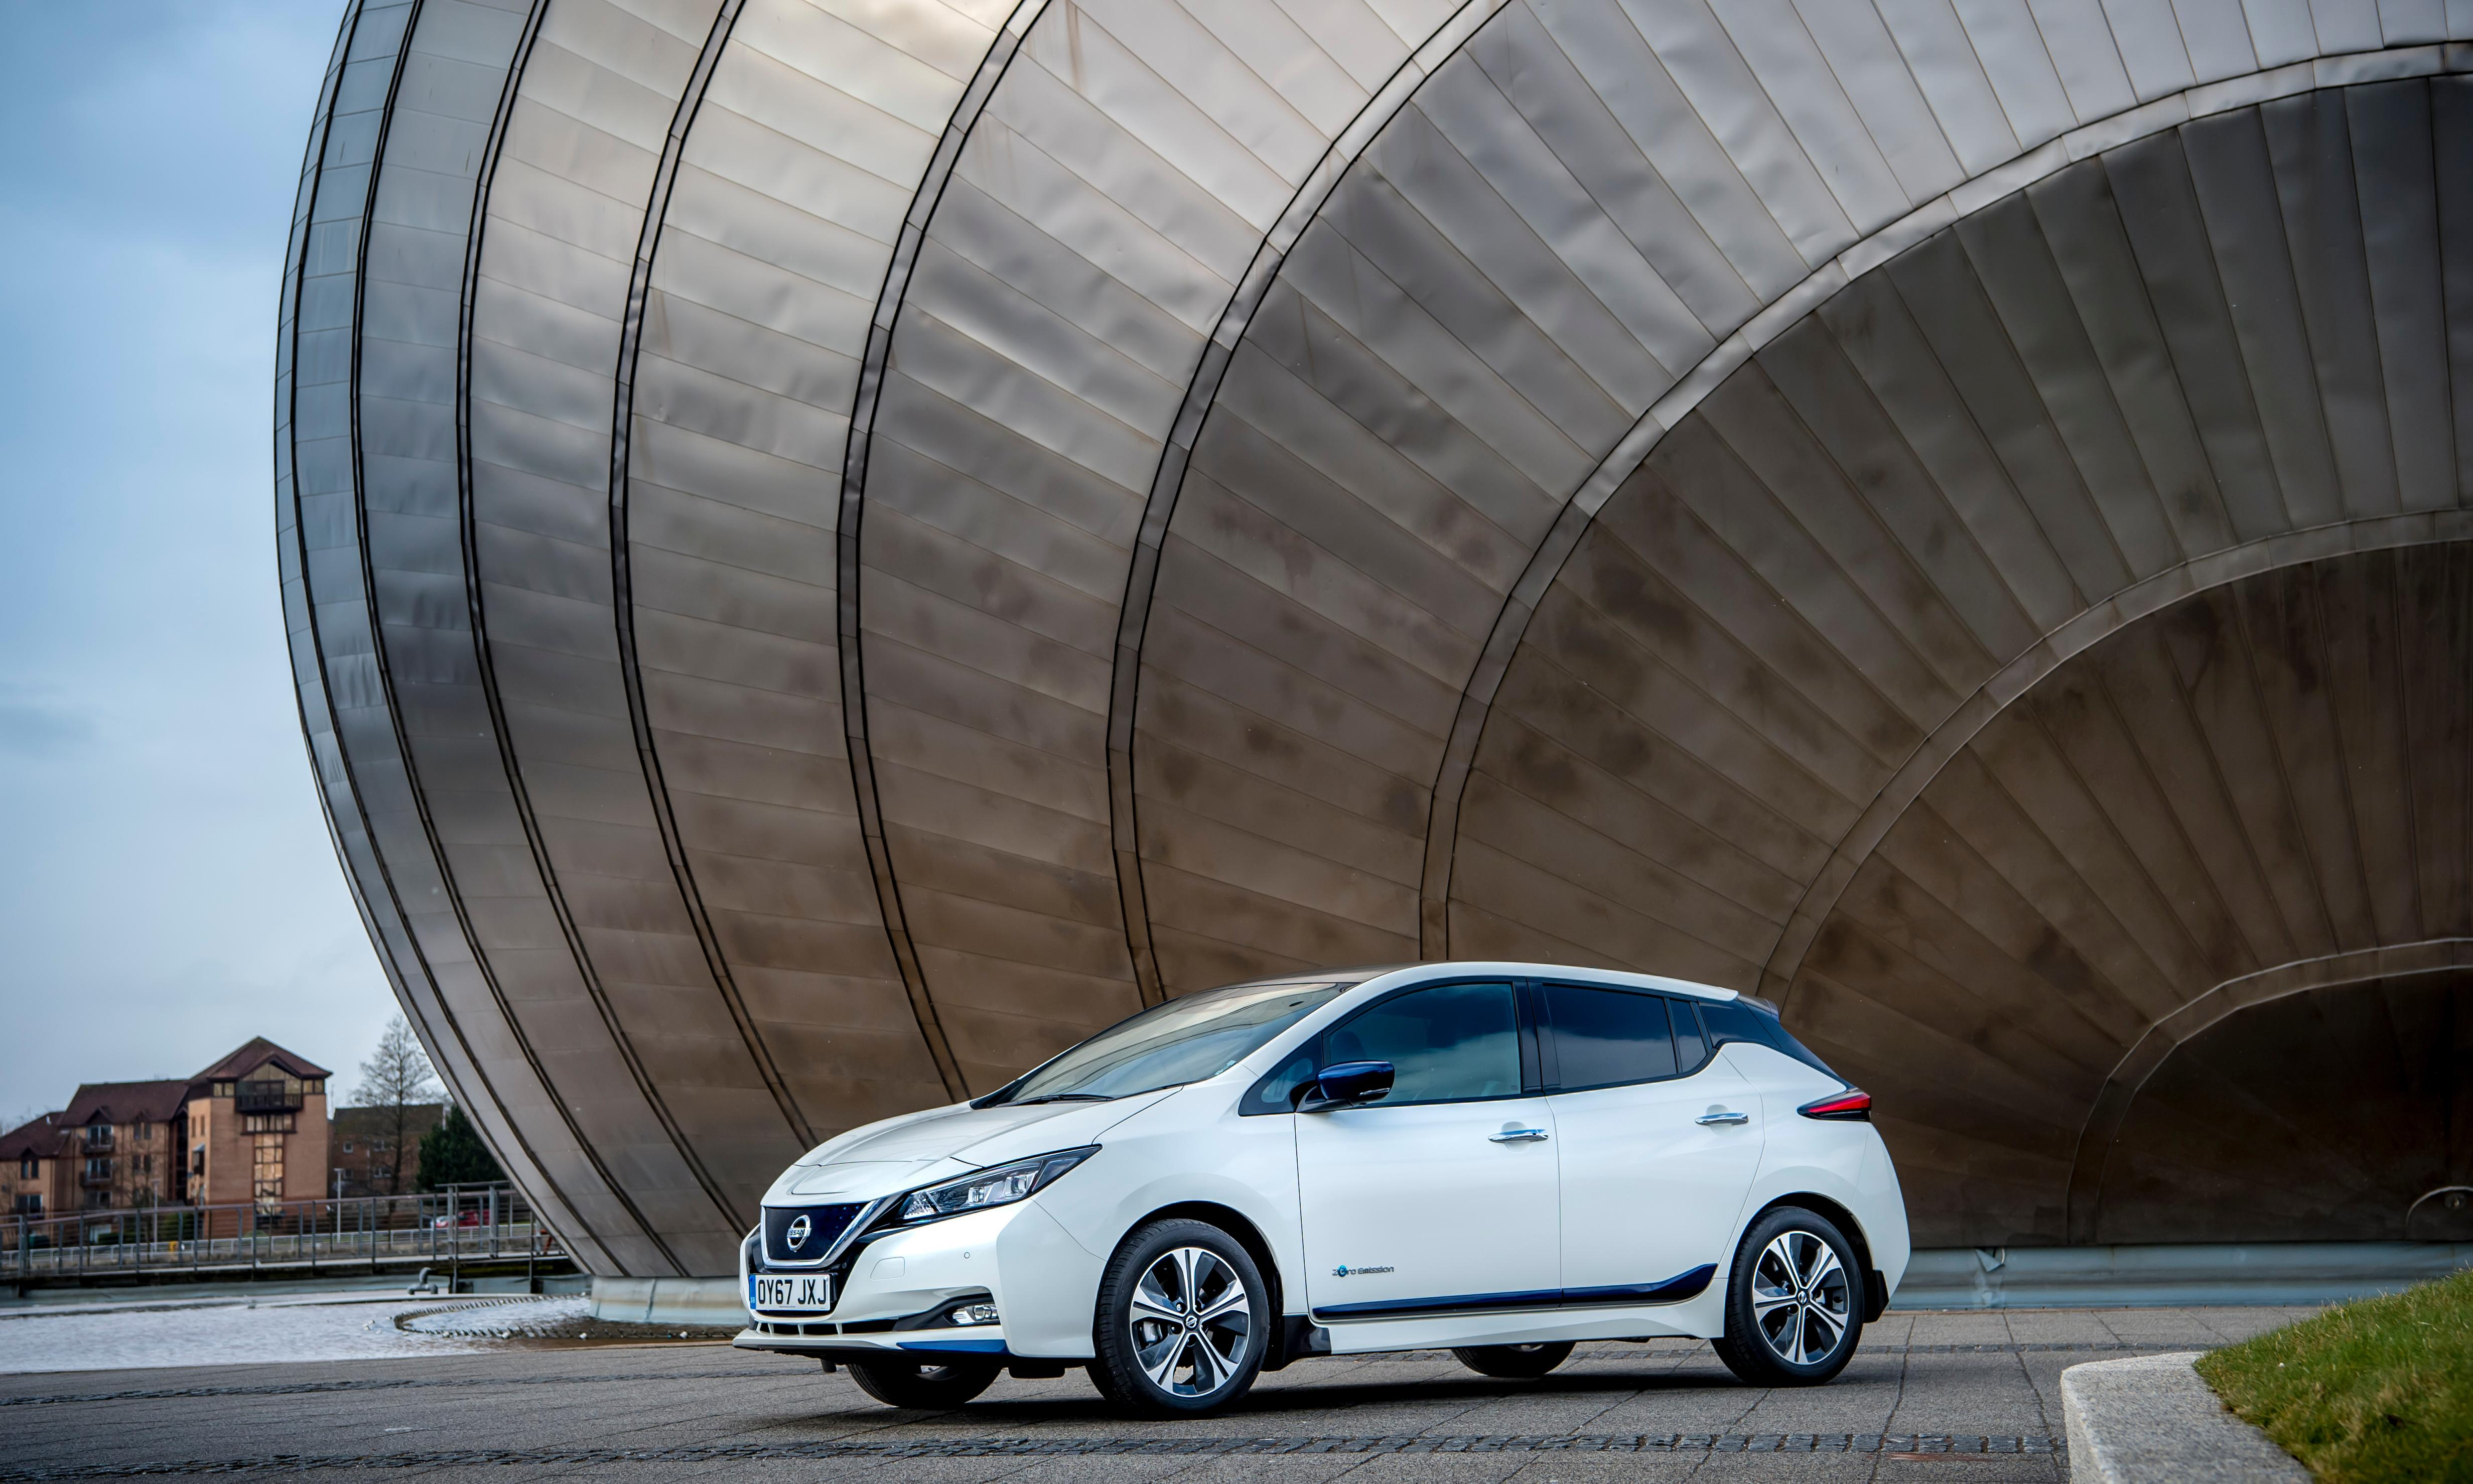 Nissan Leaf: 'Much more than simply a car with an electric motor'